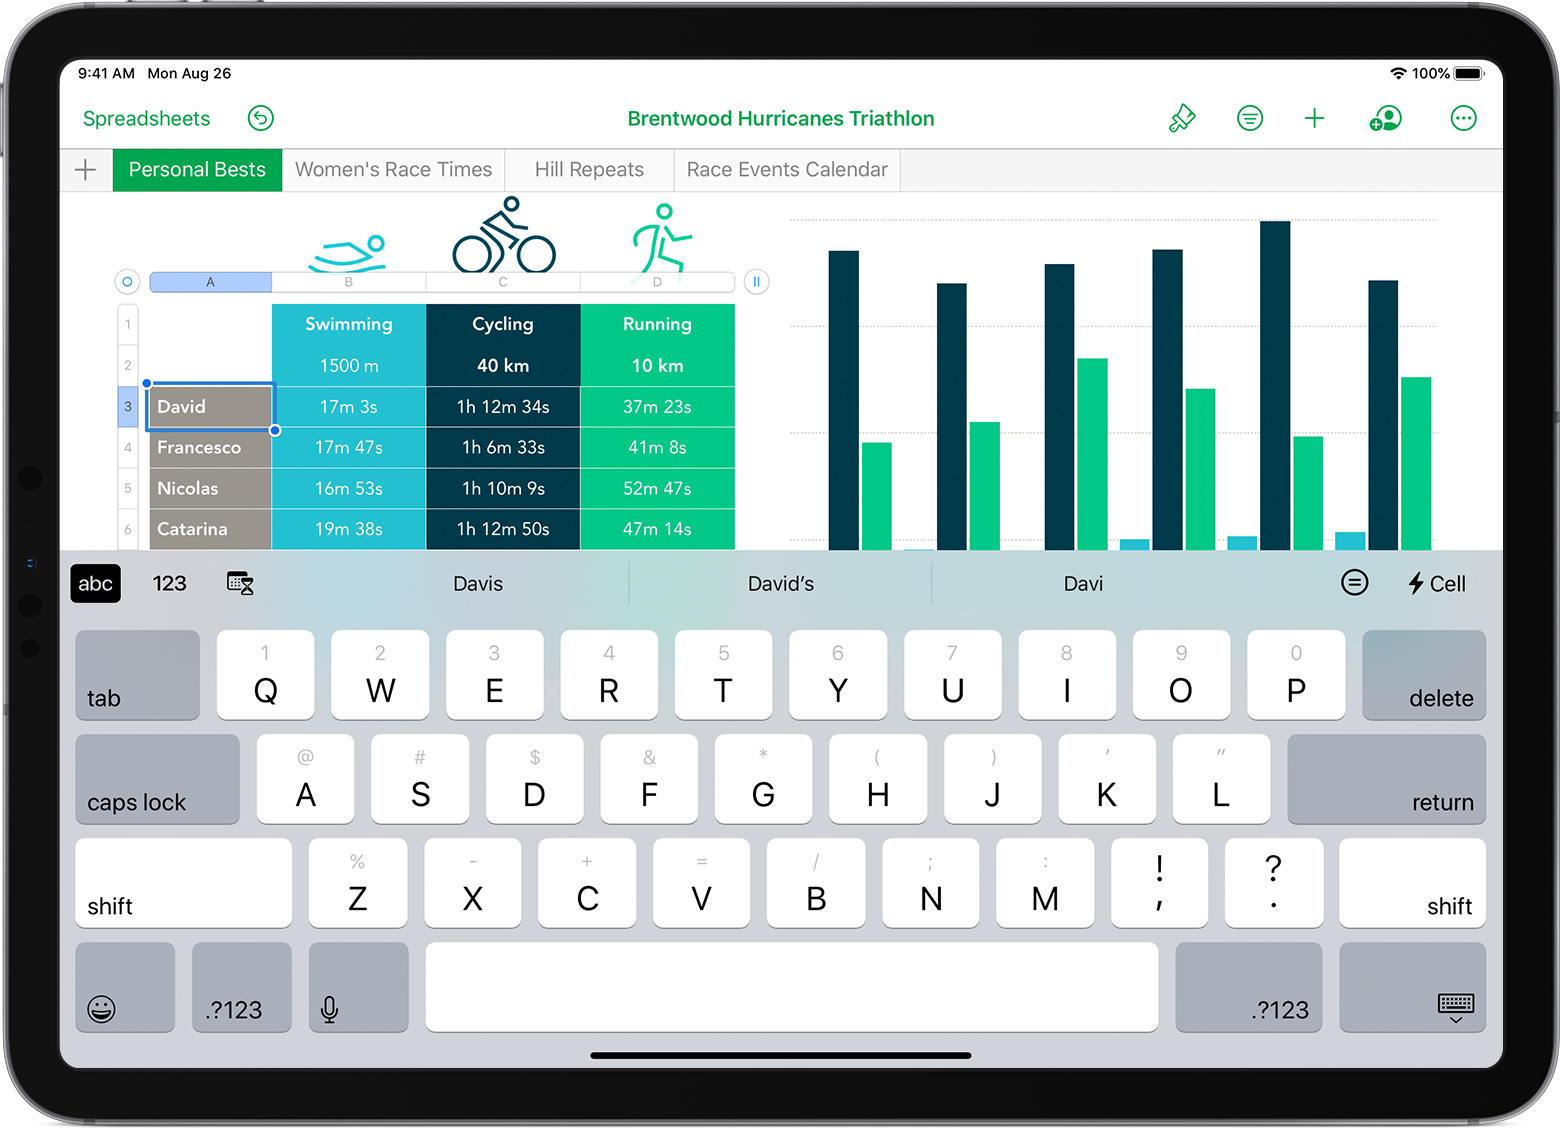 Learn about simplified data entry in Numbers for iPhone, iPad, and iPod  touch - Apple Support